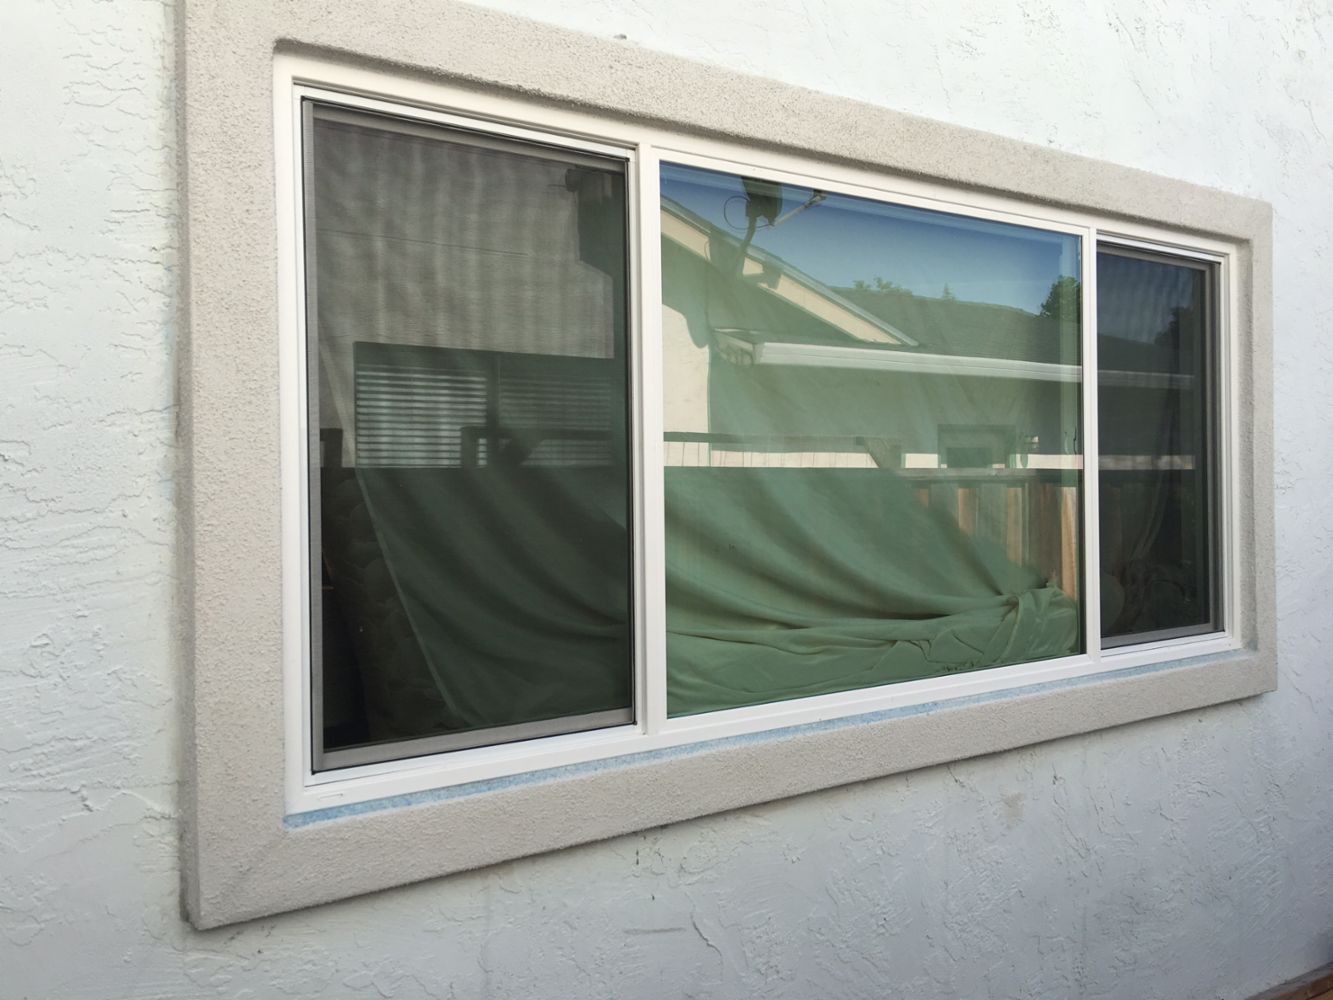 Window and door replacement in danville ca cal for Window and door replacement company